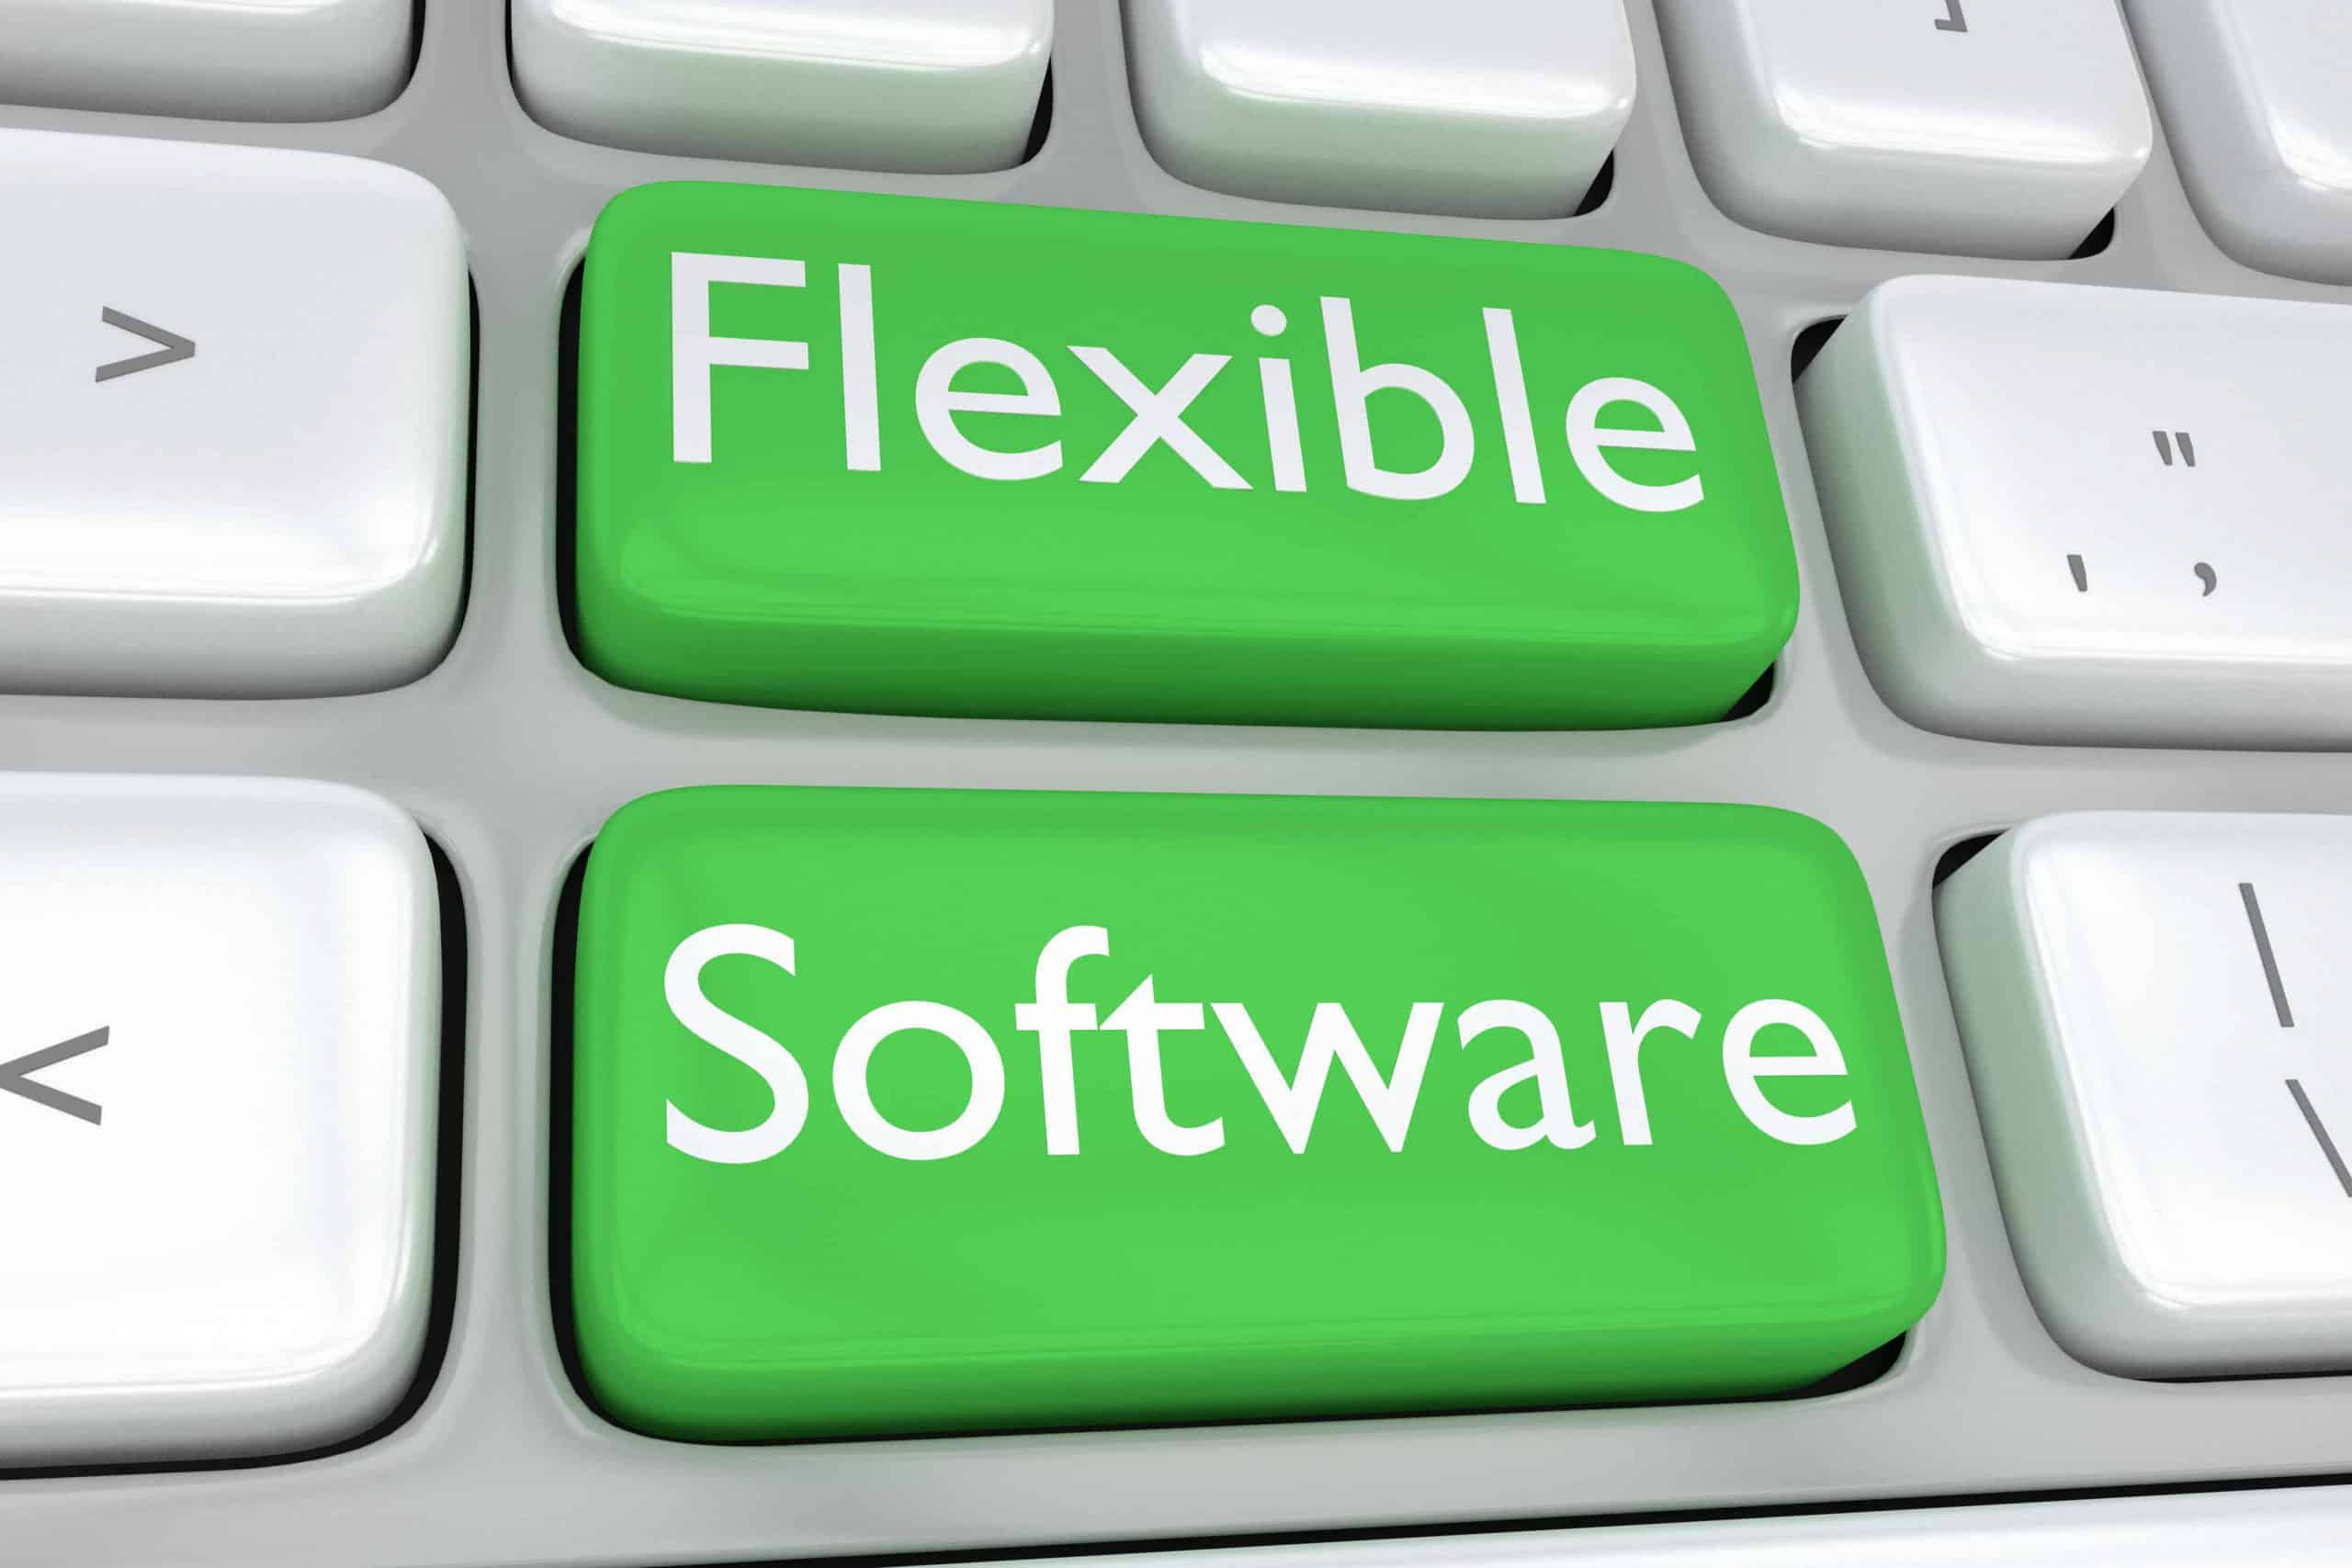 Flexible - Is the Software actually Flexible & Why is this so Important?